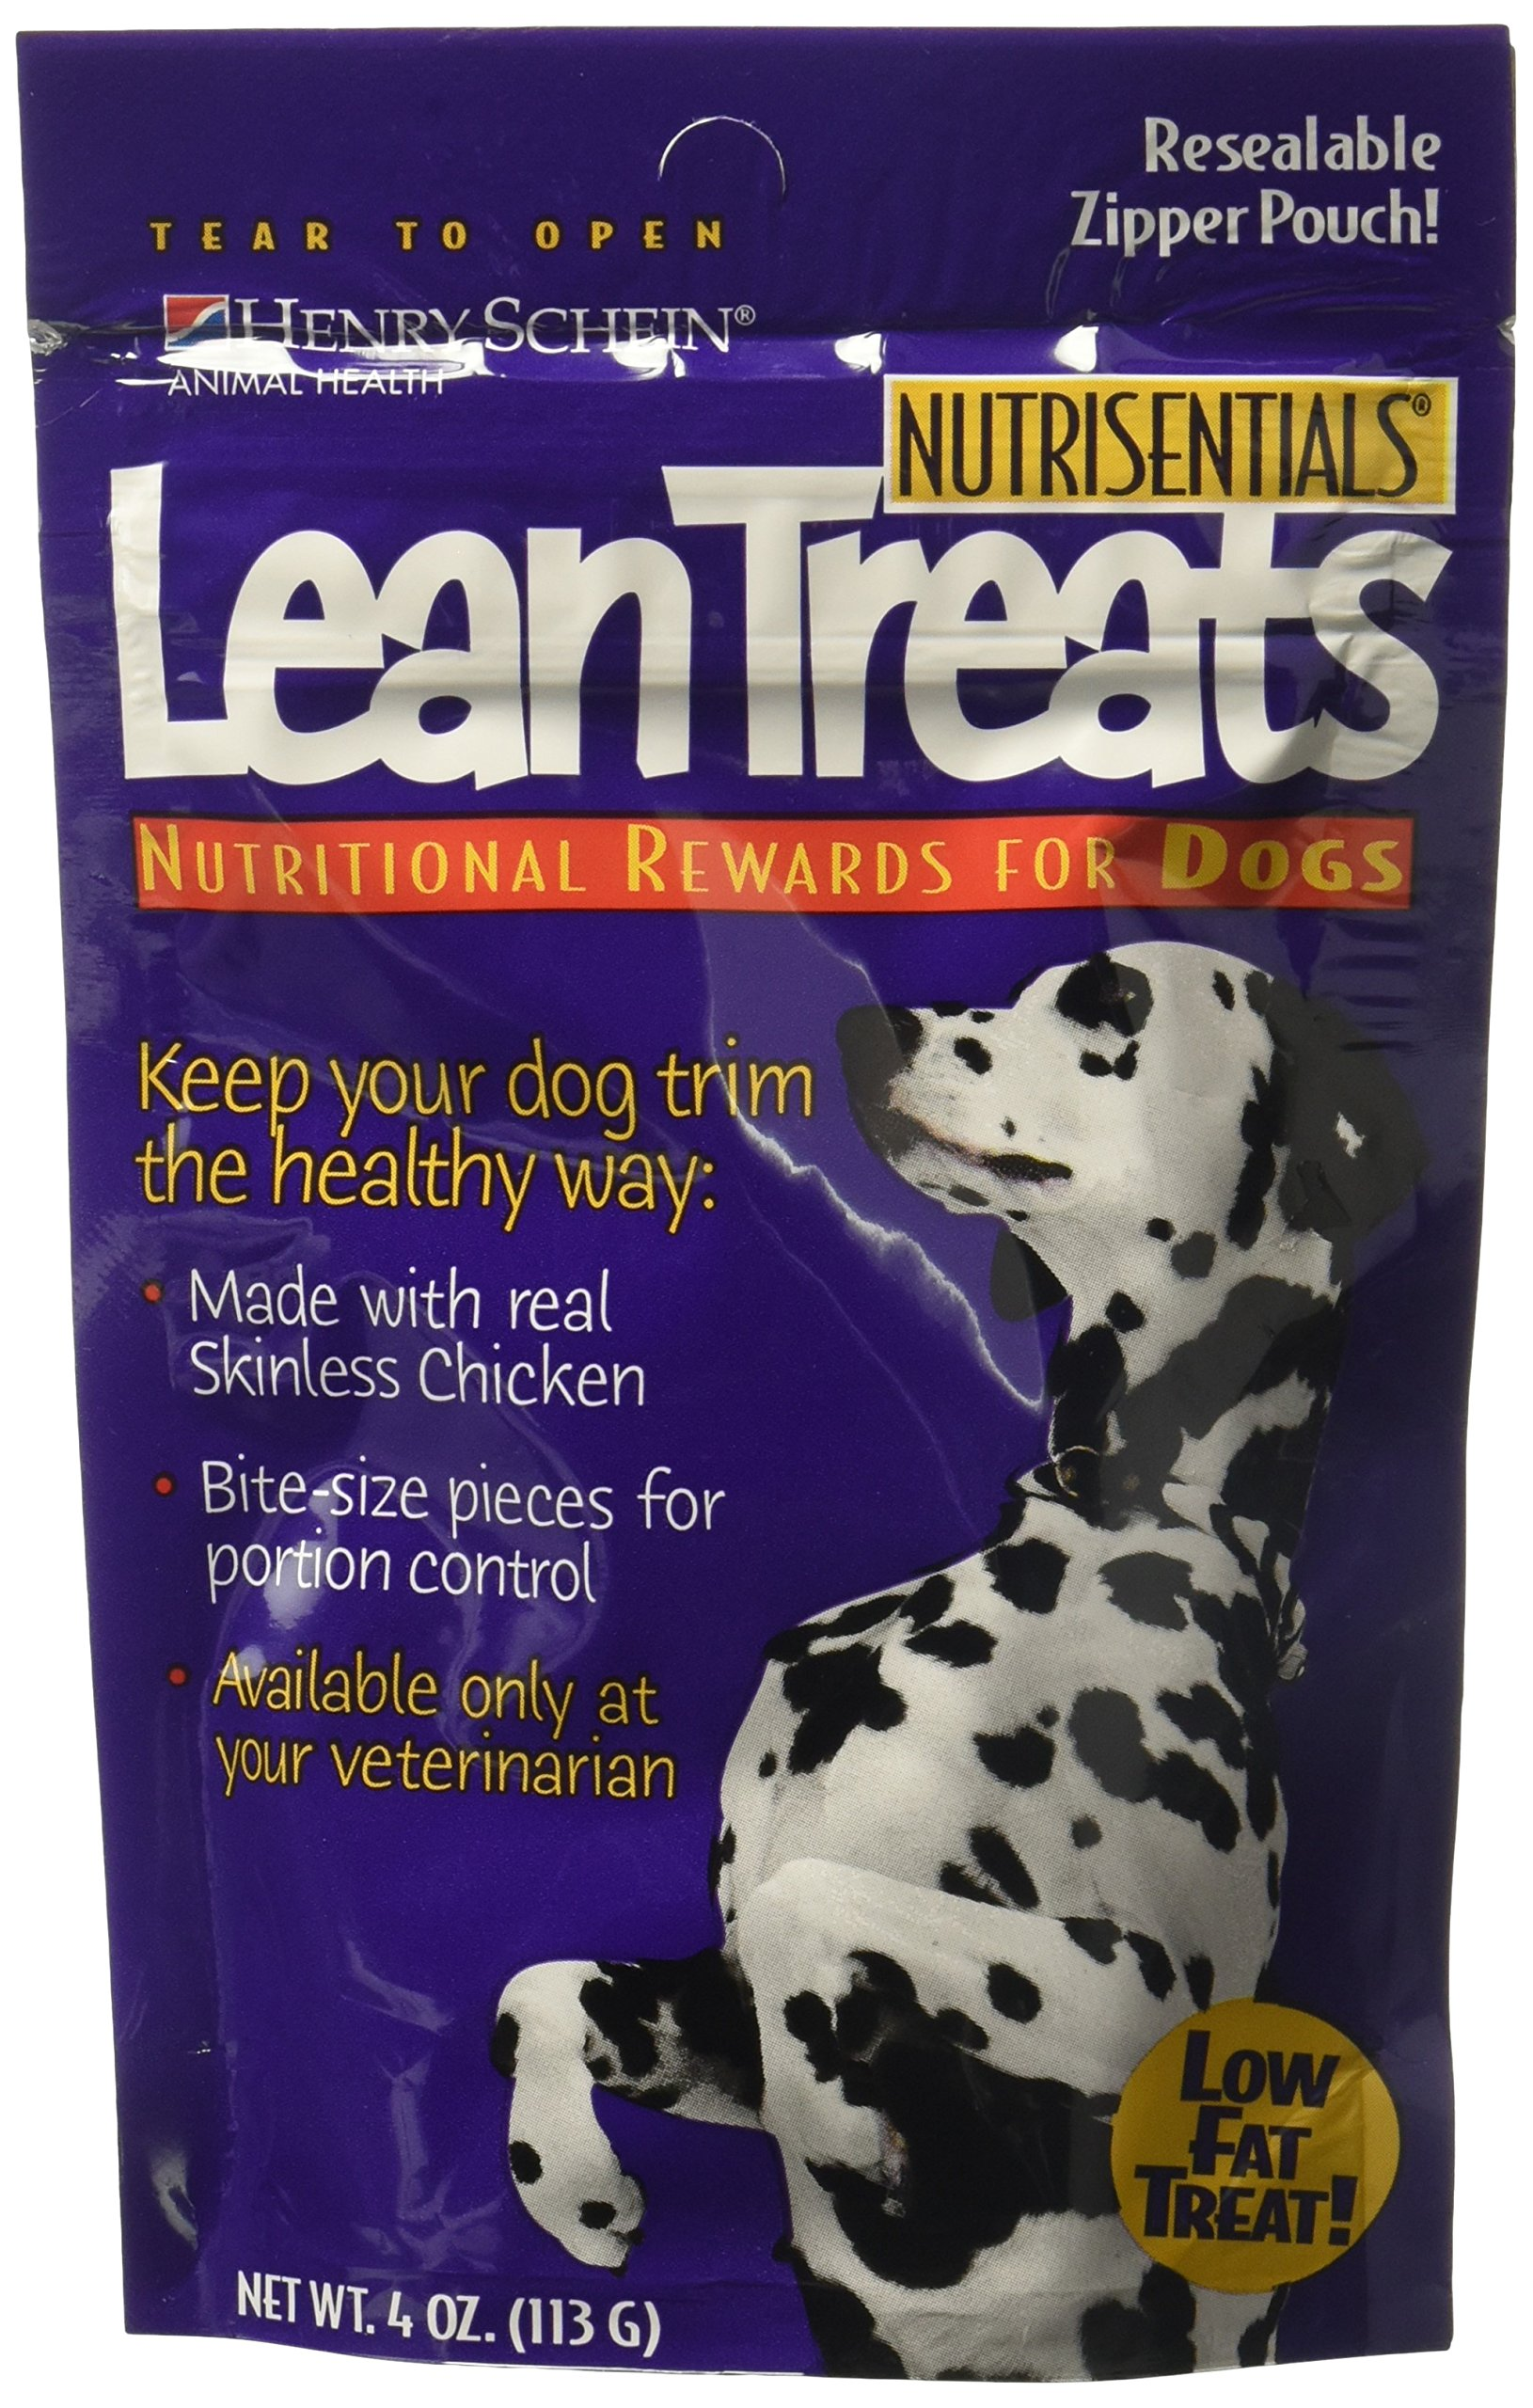 Nutrisentials Lean Treats For Dogs 4oz Bag - Pack of 3